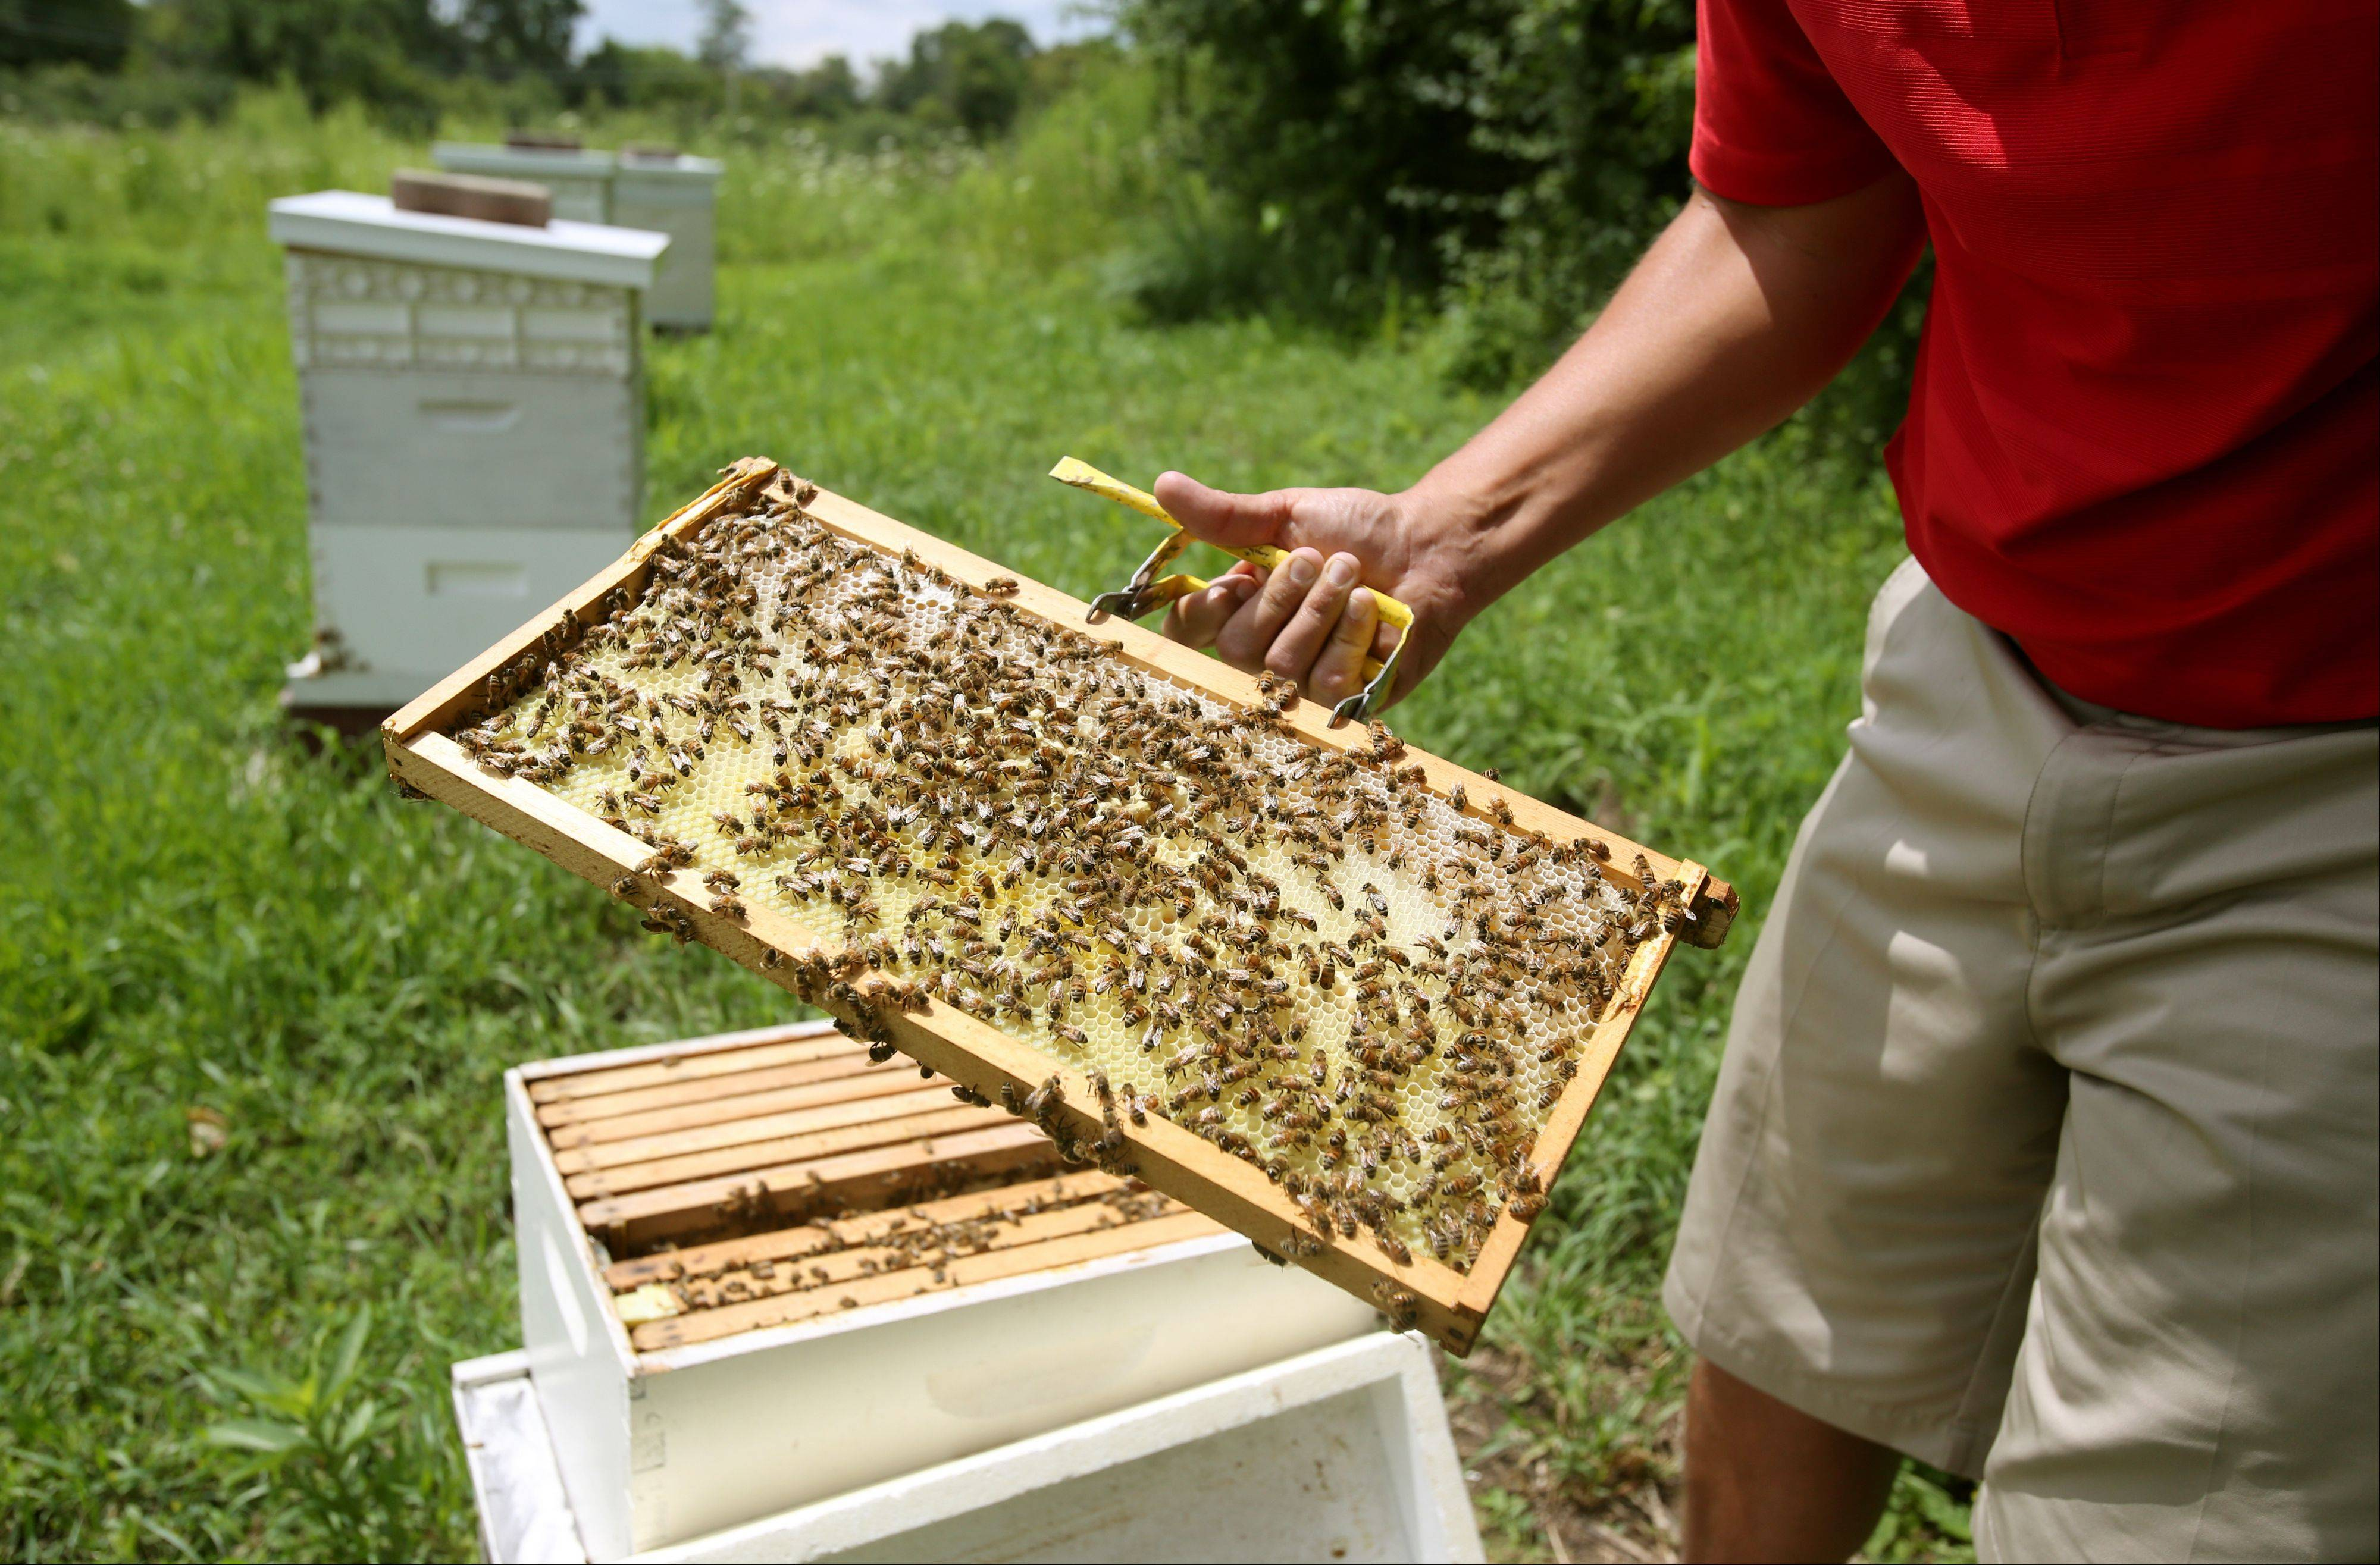 Scott Witte, superintendent of Cantigny Golf and self-taught apiarist, shows part of the brooding chamber of a beehive.